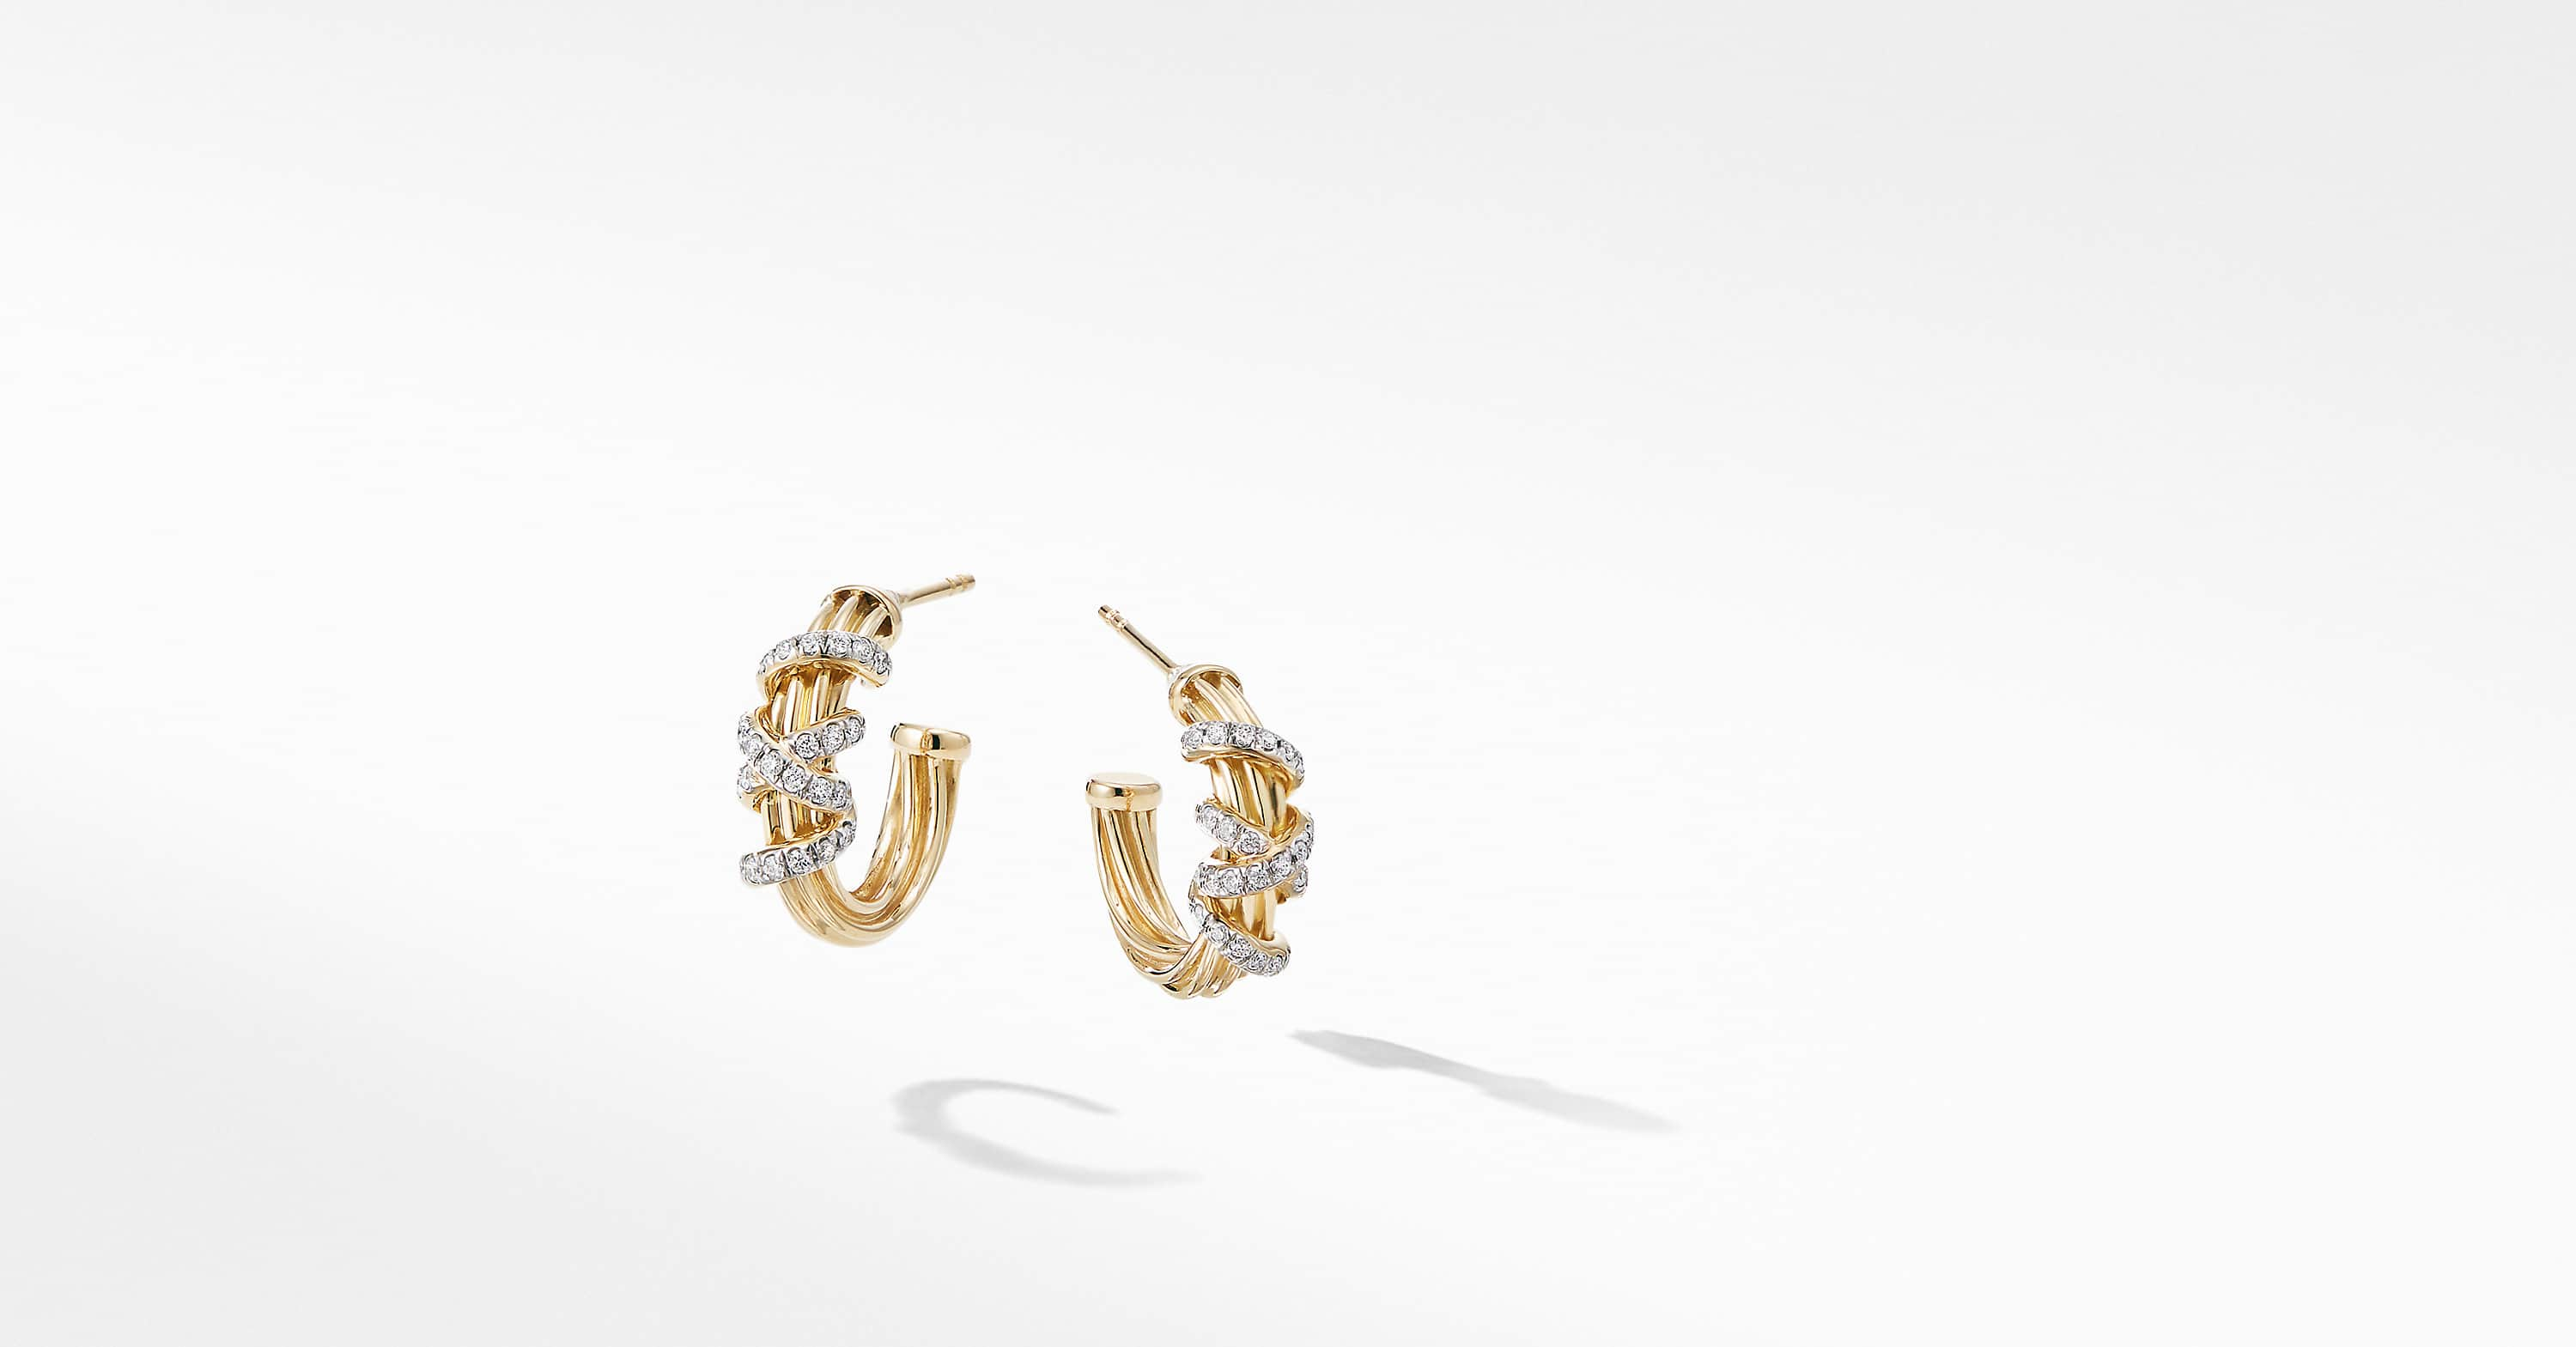 Helena Small Hoop Earring in 18K Yellow Gold with Diamonds